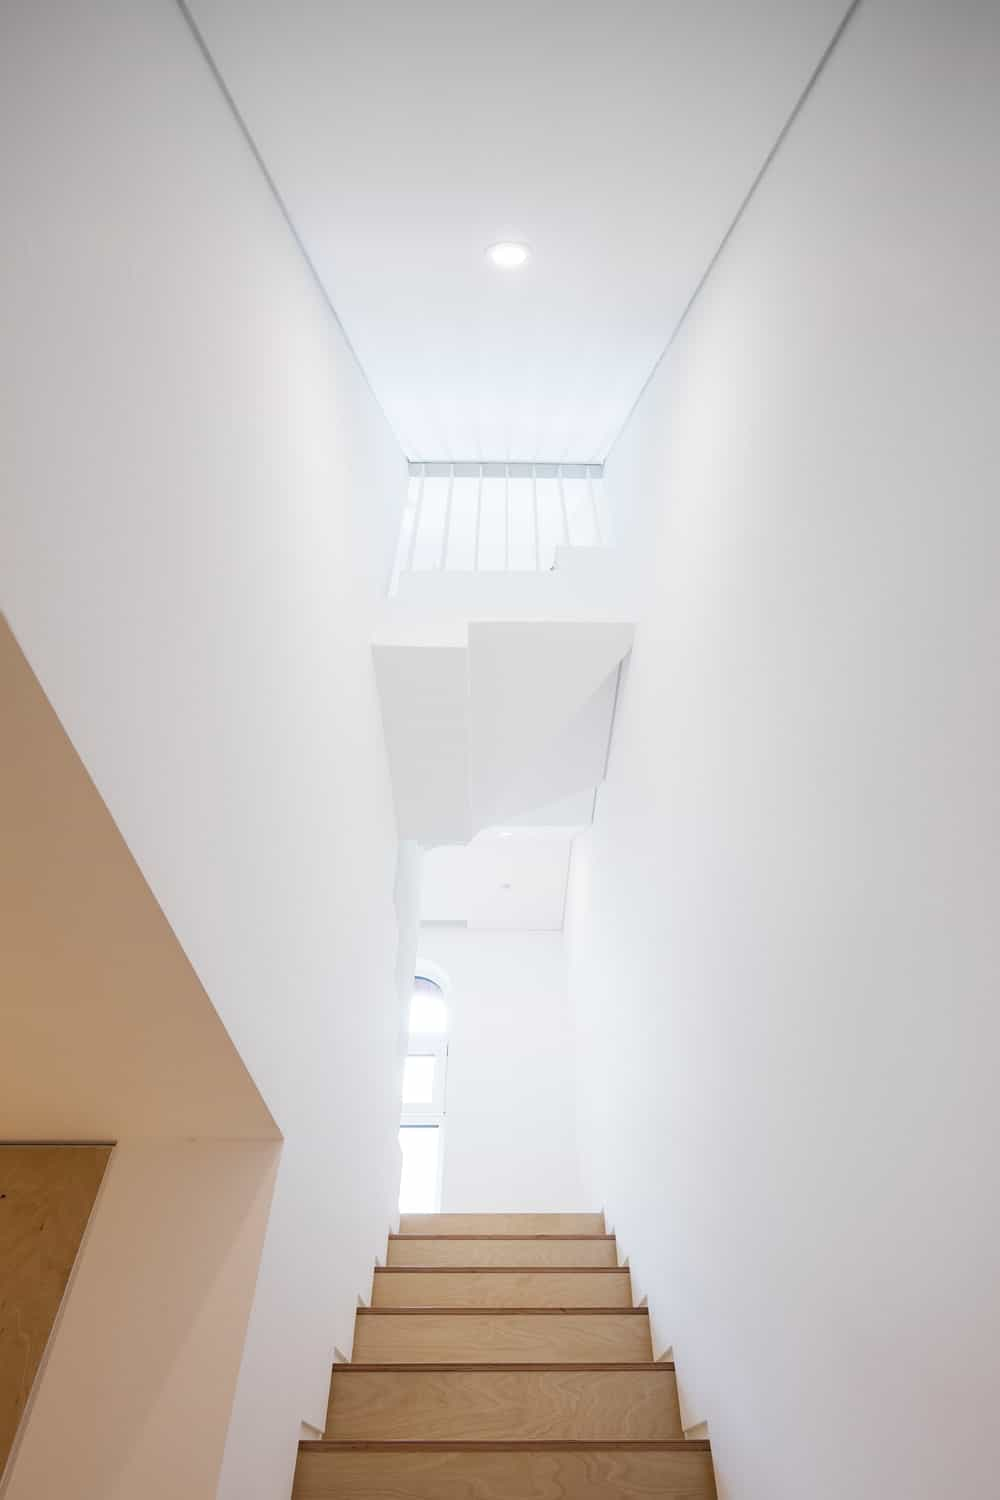 This is a look up the staircase showcasing the bright white walls above the stairs as well as the indoor balcony.